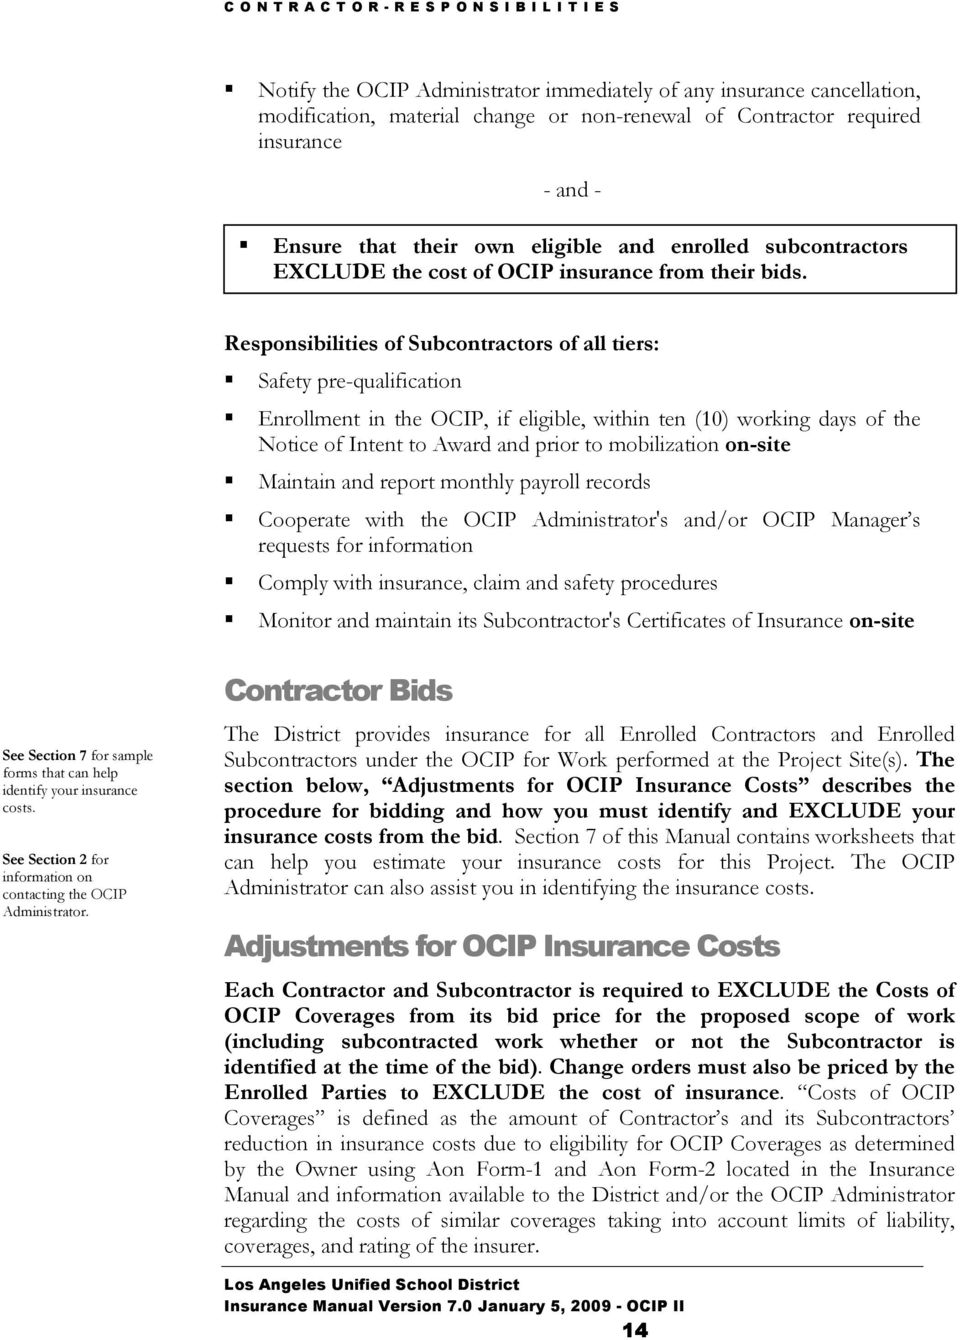 Responsibilities of Subcontractors of all tiers: Safety pre-qualification Enrollment in the OCIP, if eligible, within ten (10) working days of the Notice of Intent to Award and prior to mobilization